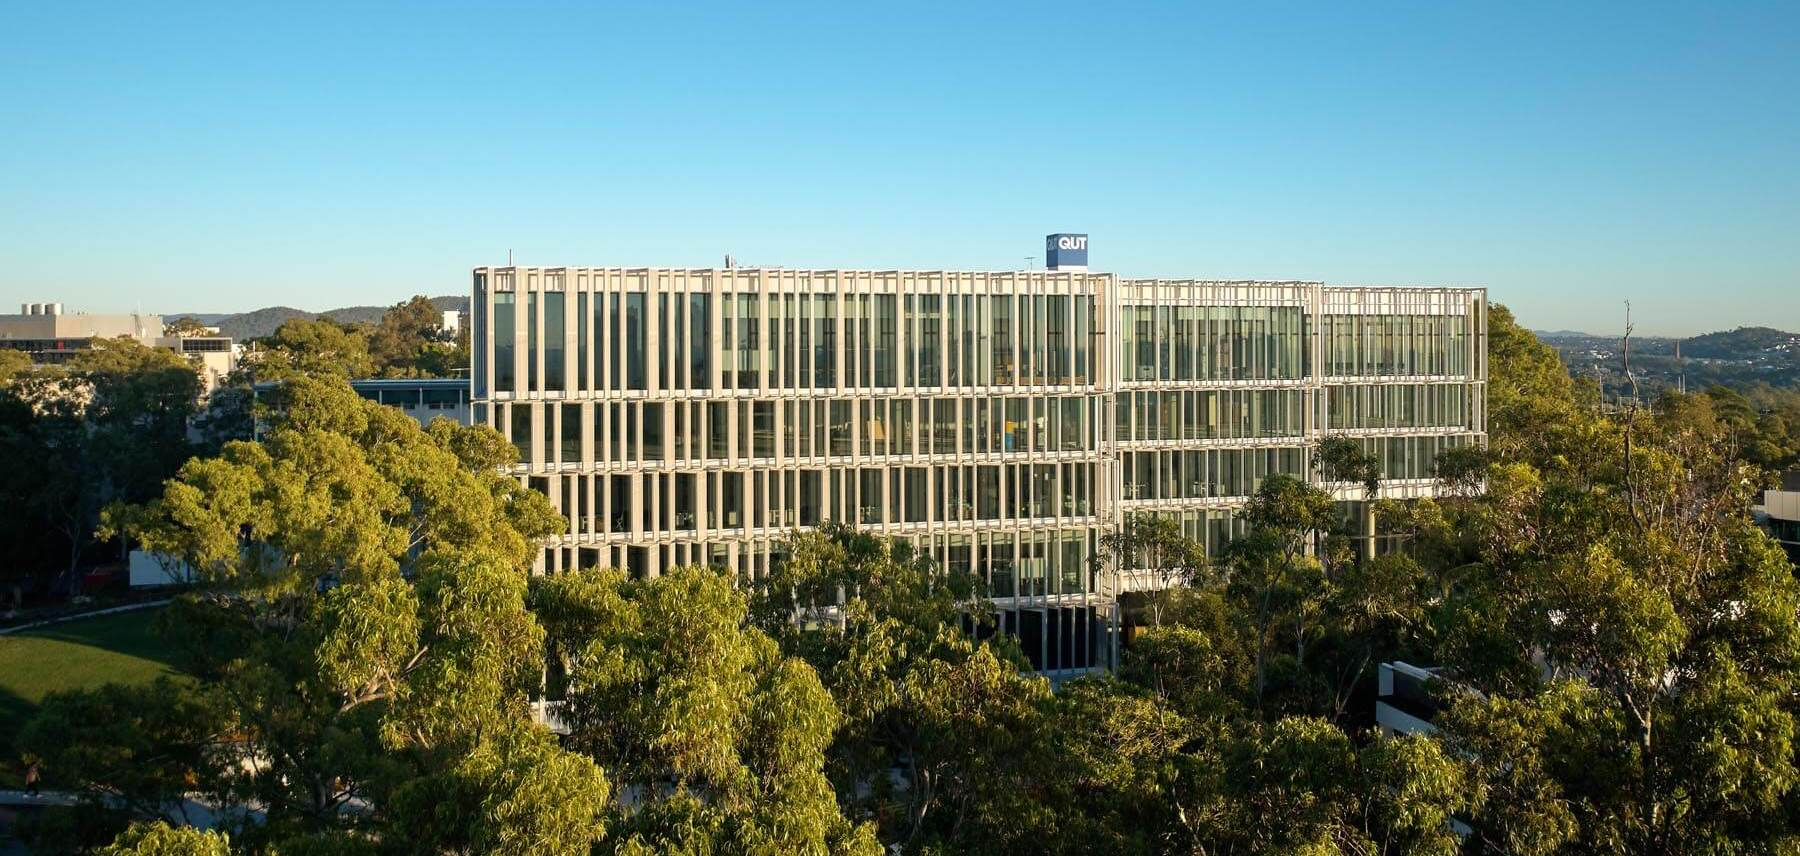 A panoramic view of the new QUT building by Henning Larsen